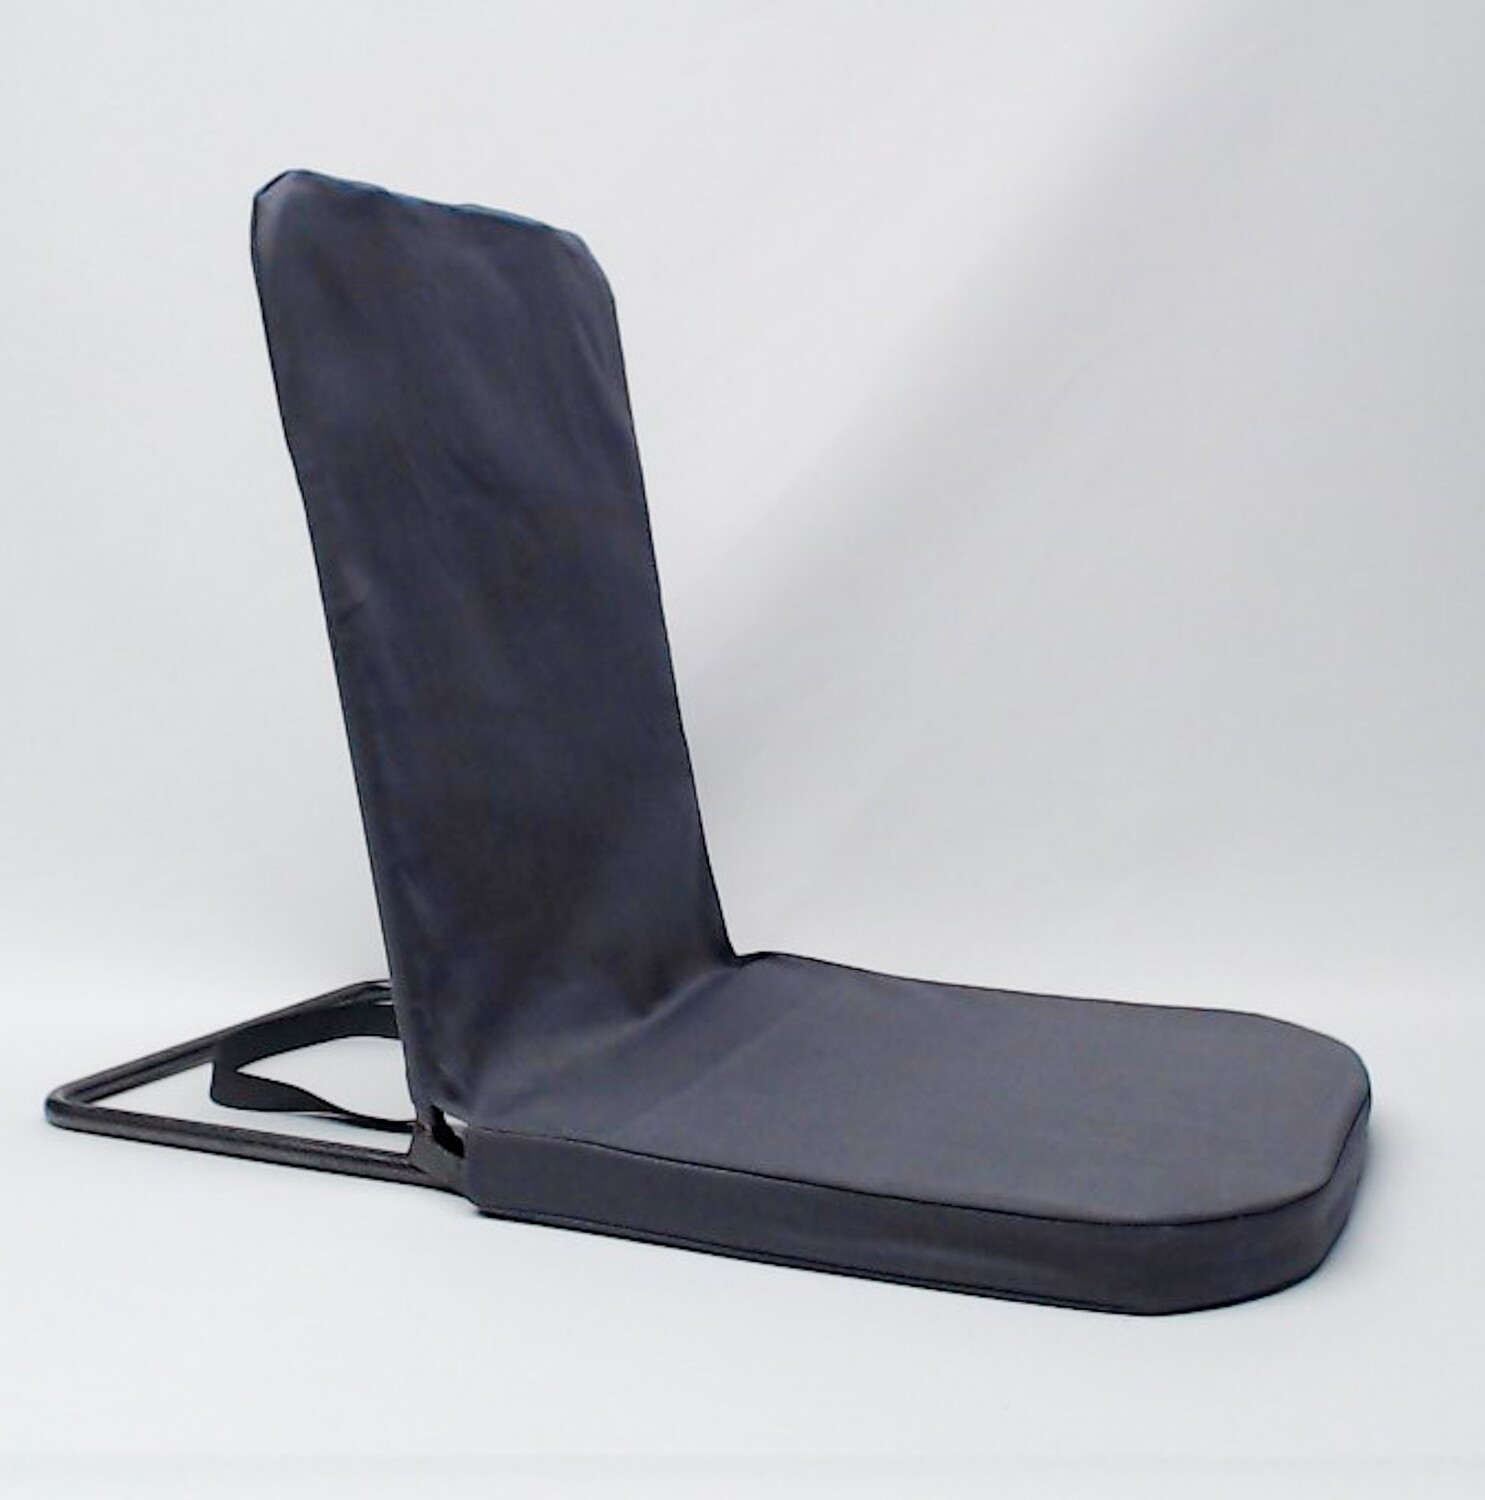 ASHRAM MEDITATION BACKREST - Grey